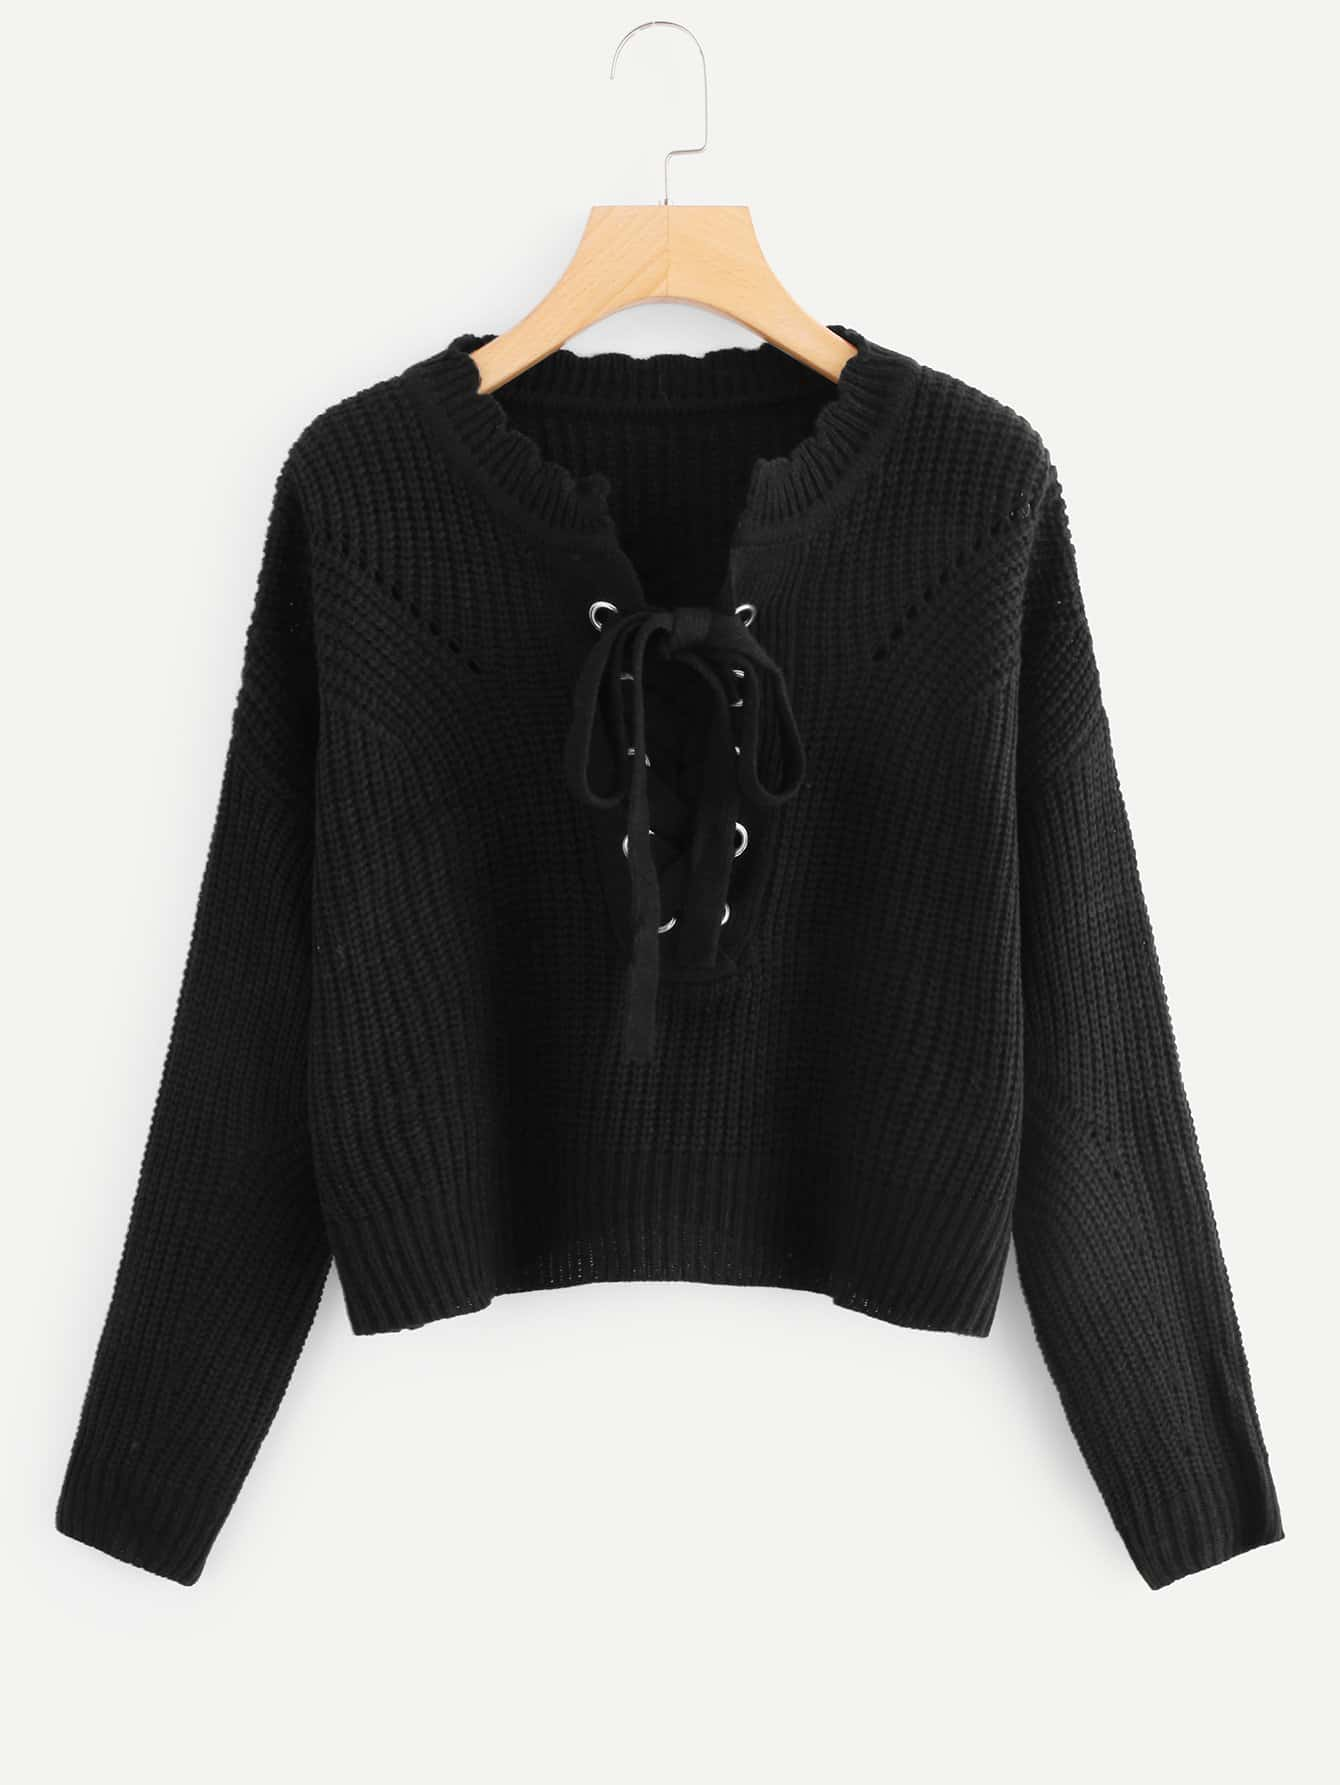 Grommet Lace Up Frilled Neck Sweater